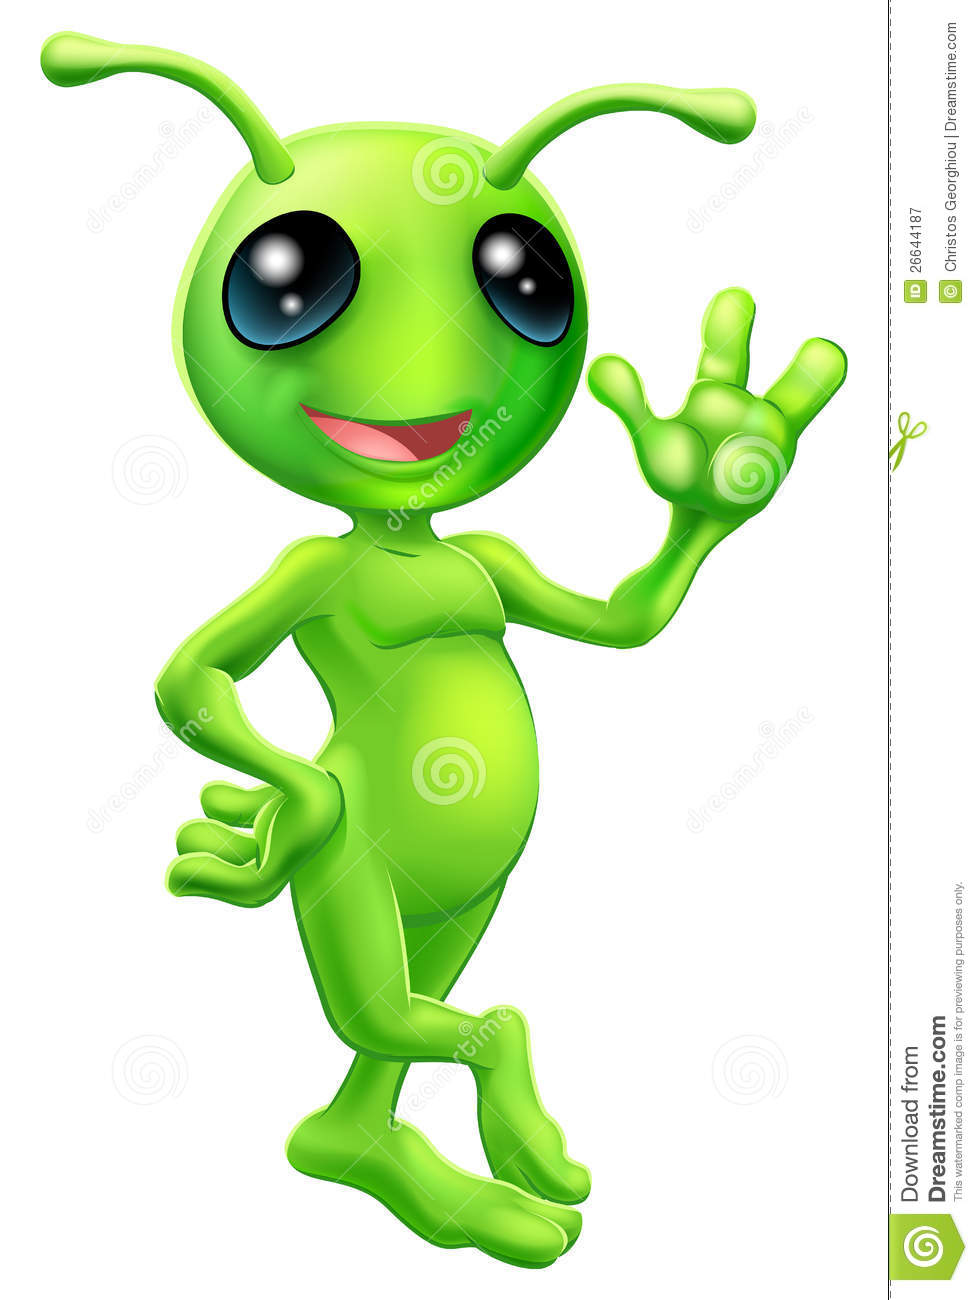 Little green men clipart.